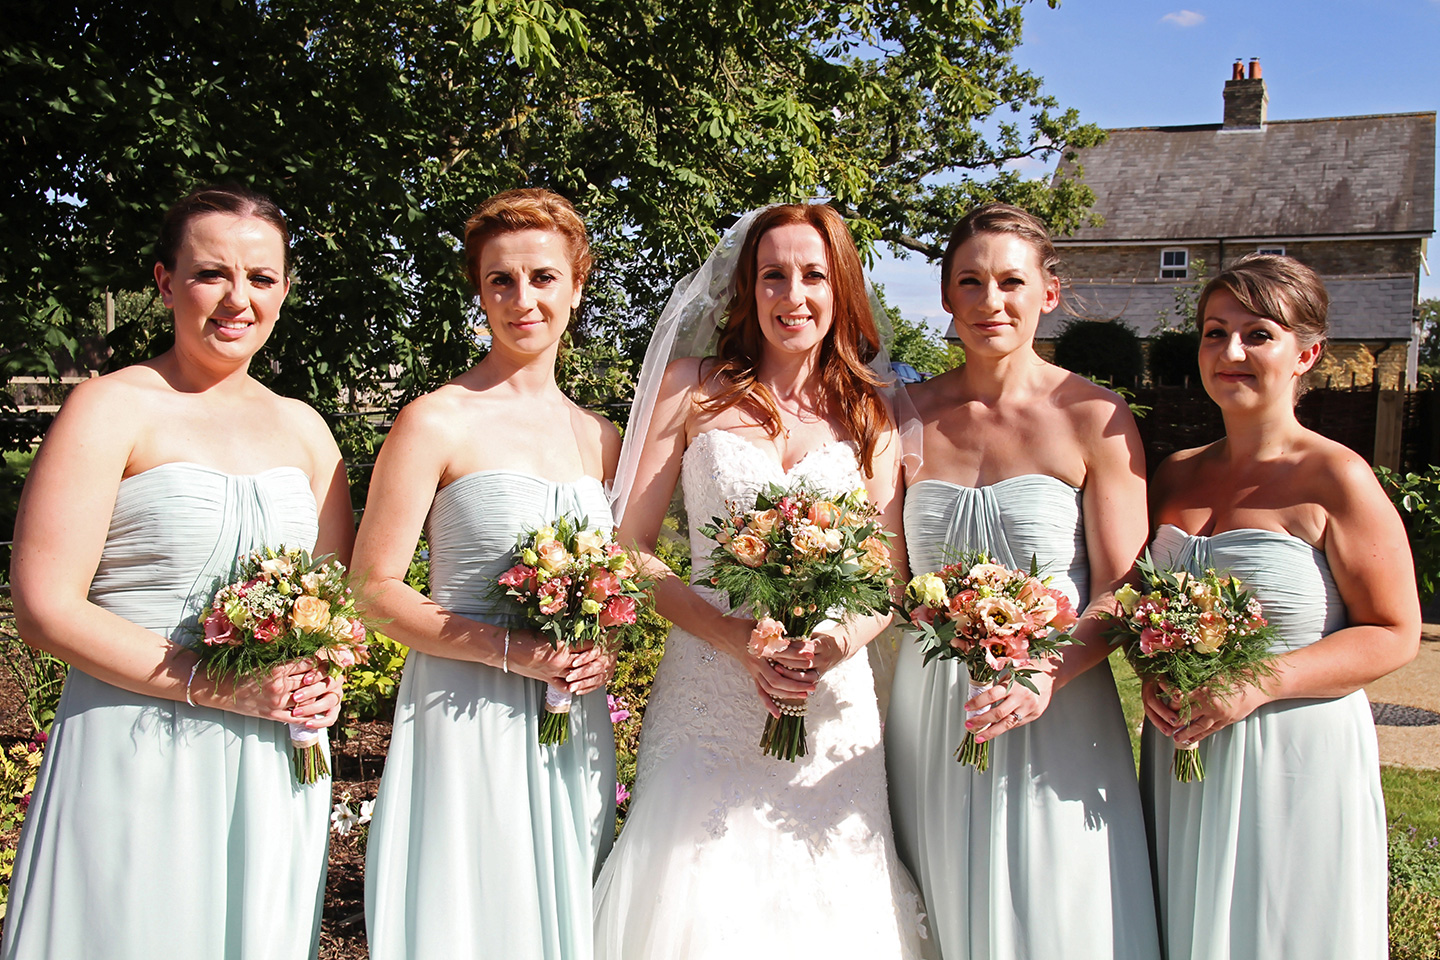 For this rustic wedding at Bassmead Manor Barns the bridesmaids wore pastel green strapless bridesmaids dresses